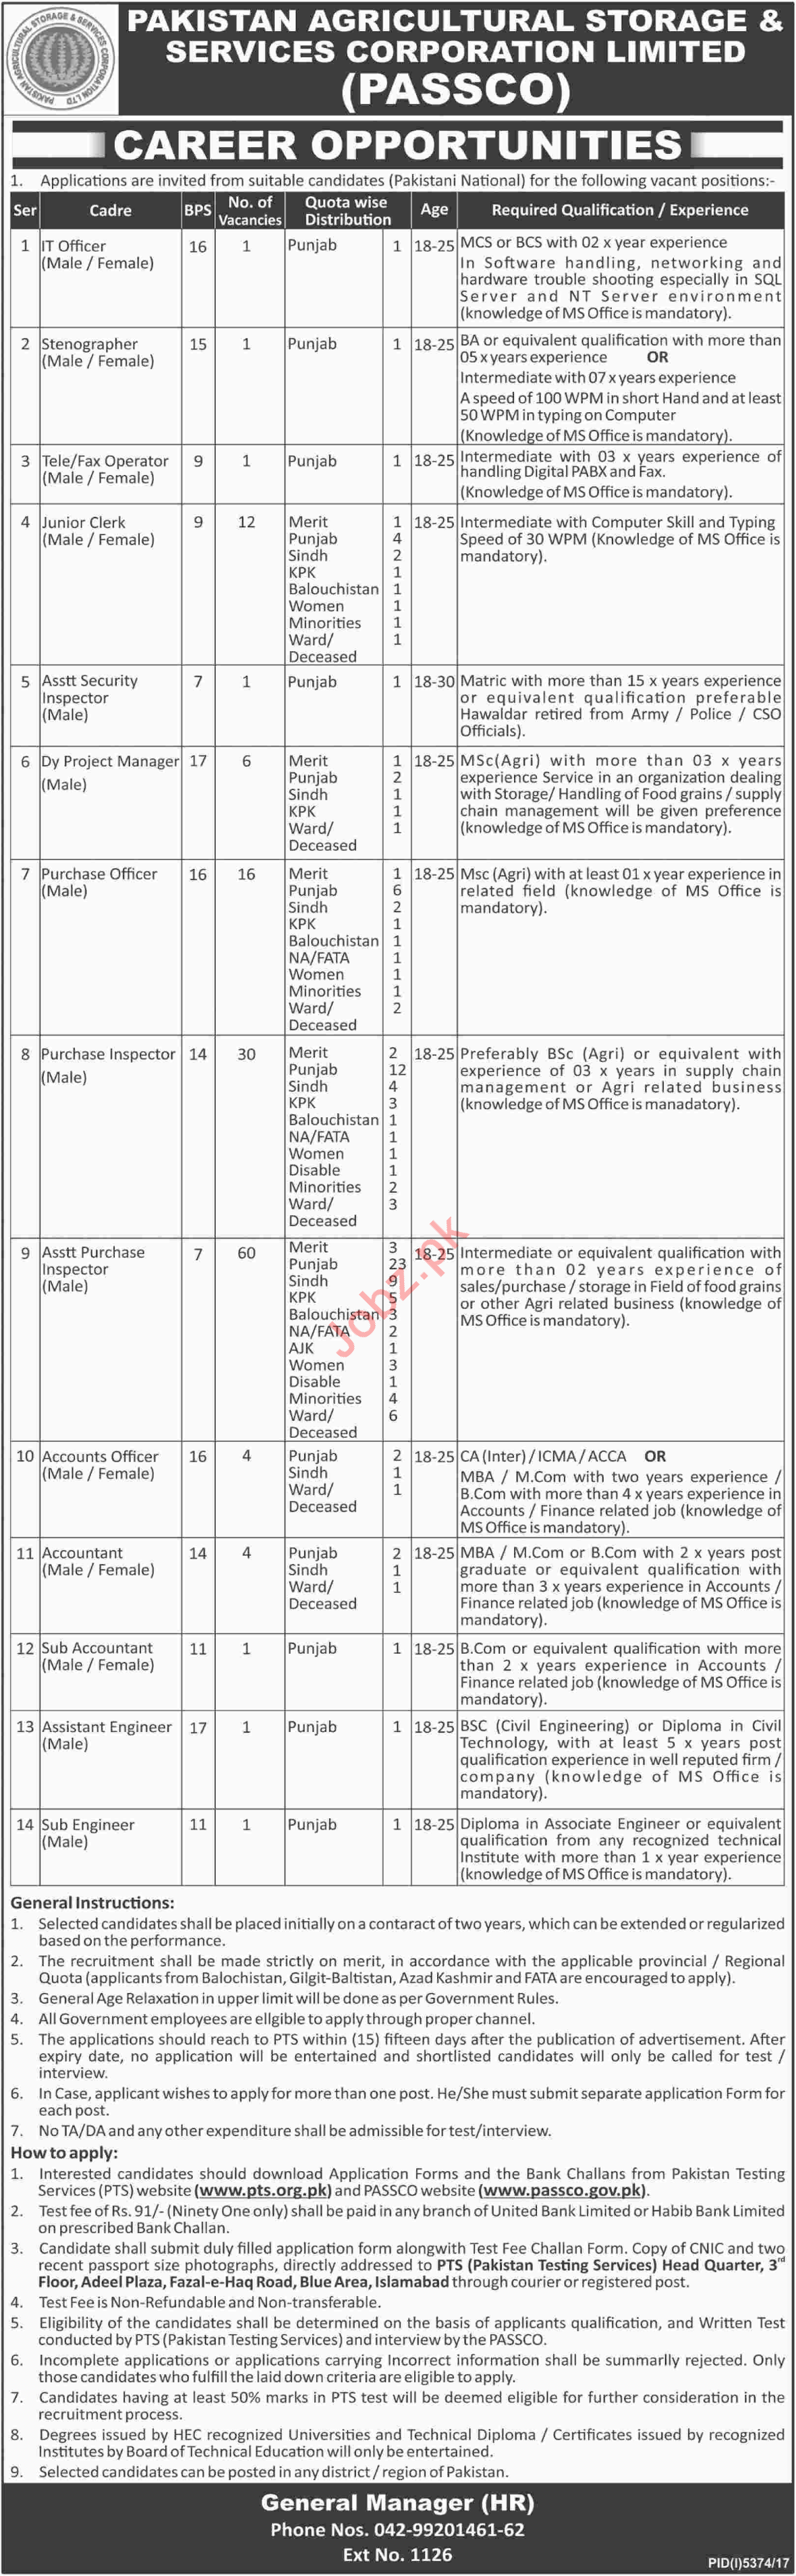 Pakistan Agricultural Storage & Services Corporation Ltd Job